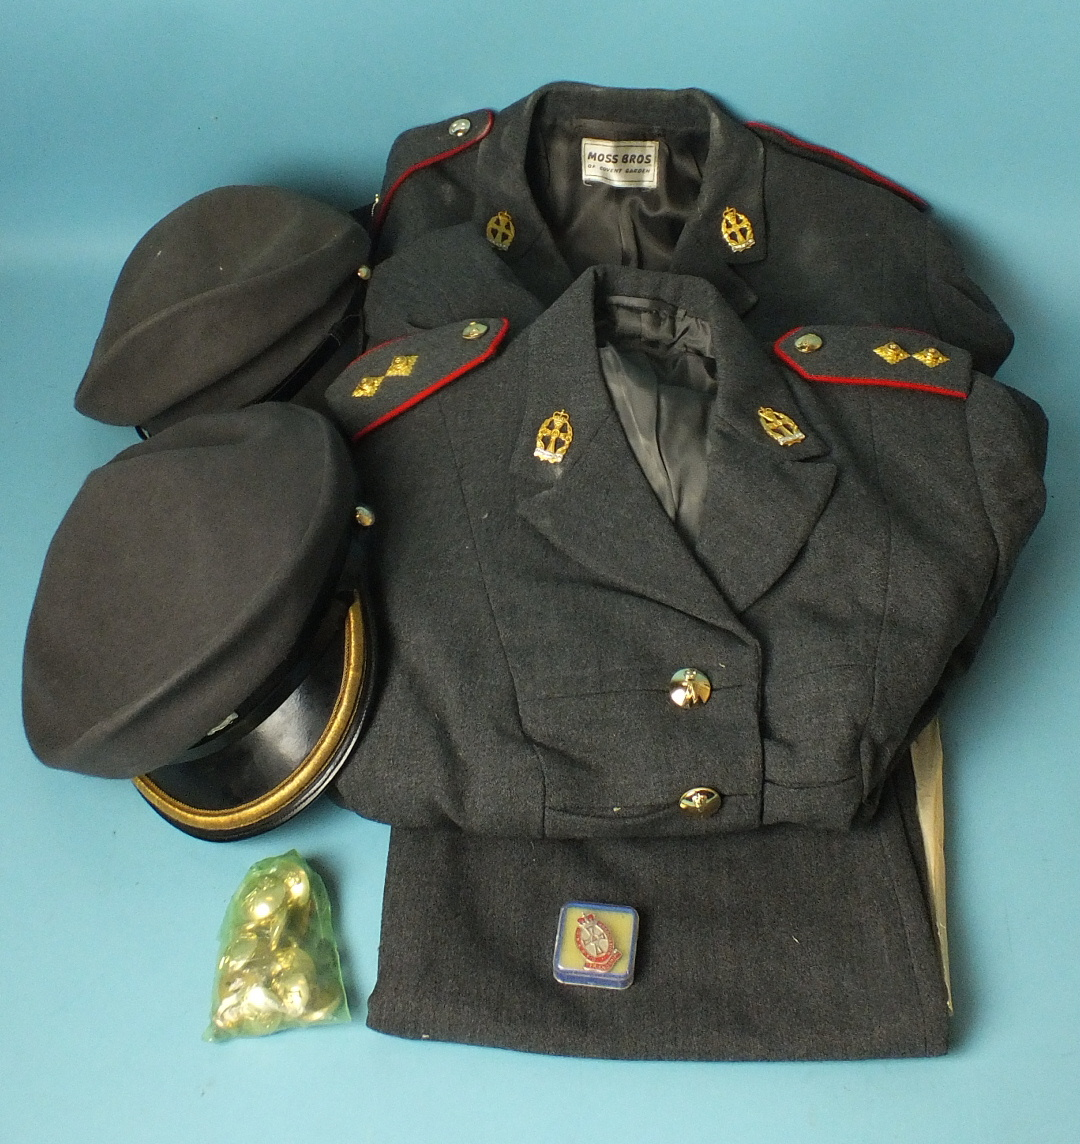 Lot 597 - Queen Alexandra Royal Army Nursing Corps: two uniform jackets, one skirt, two caps, a quantity of